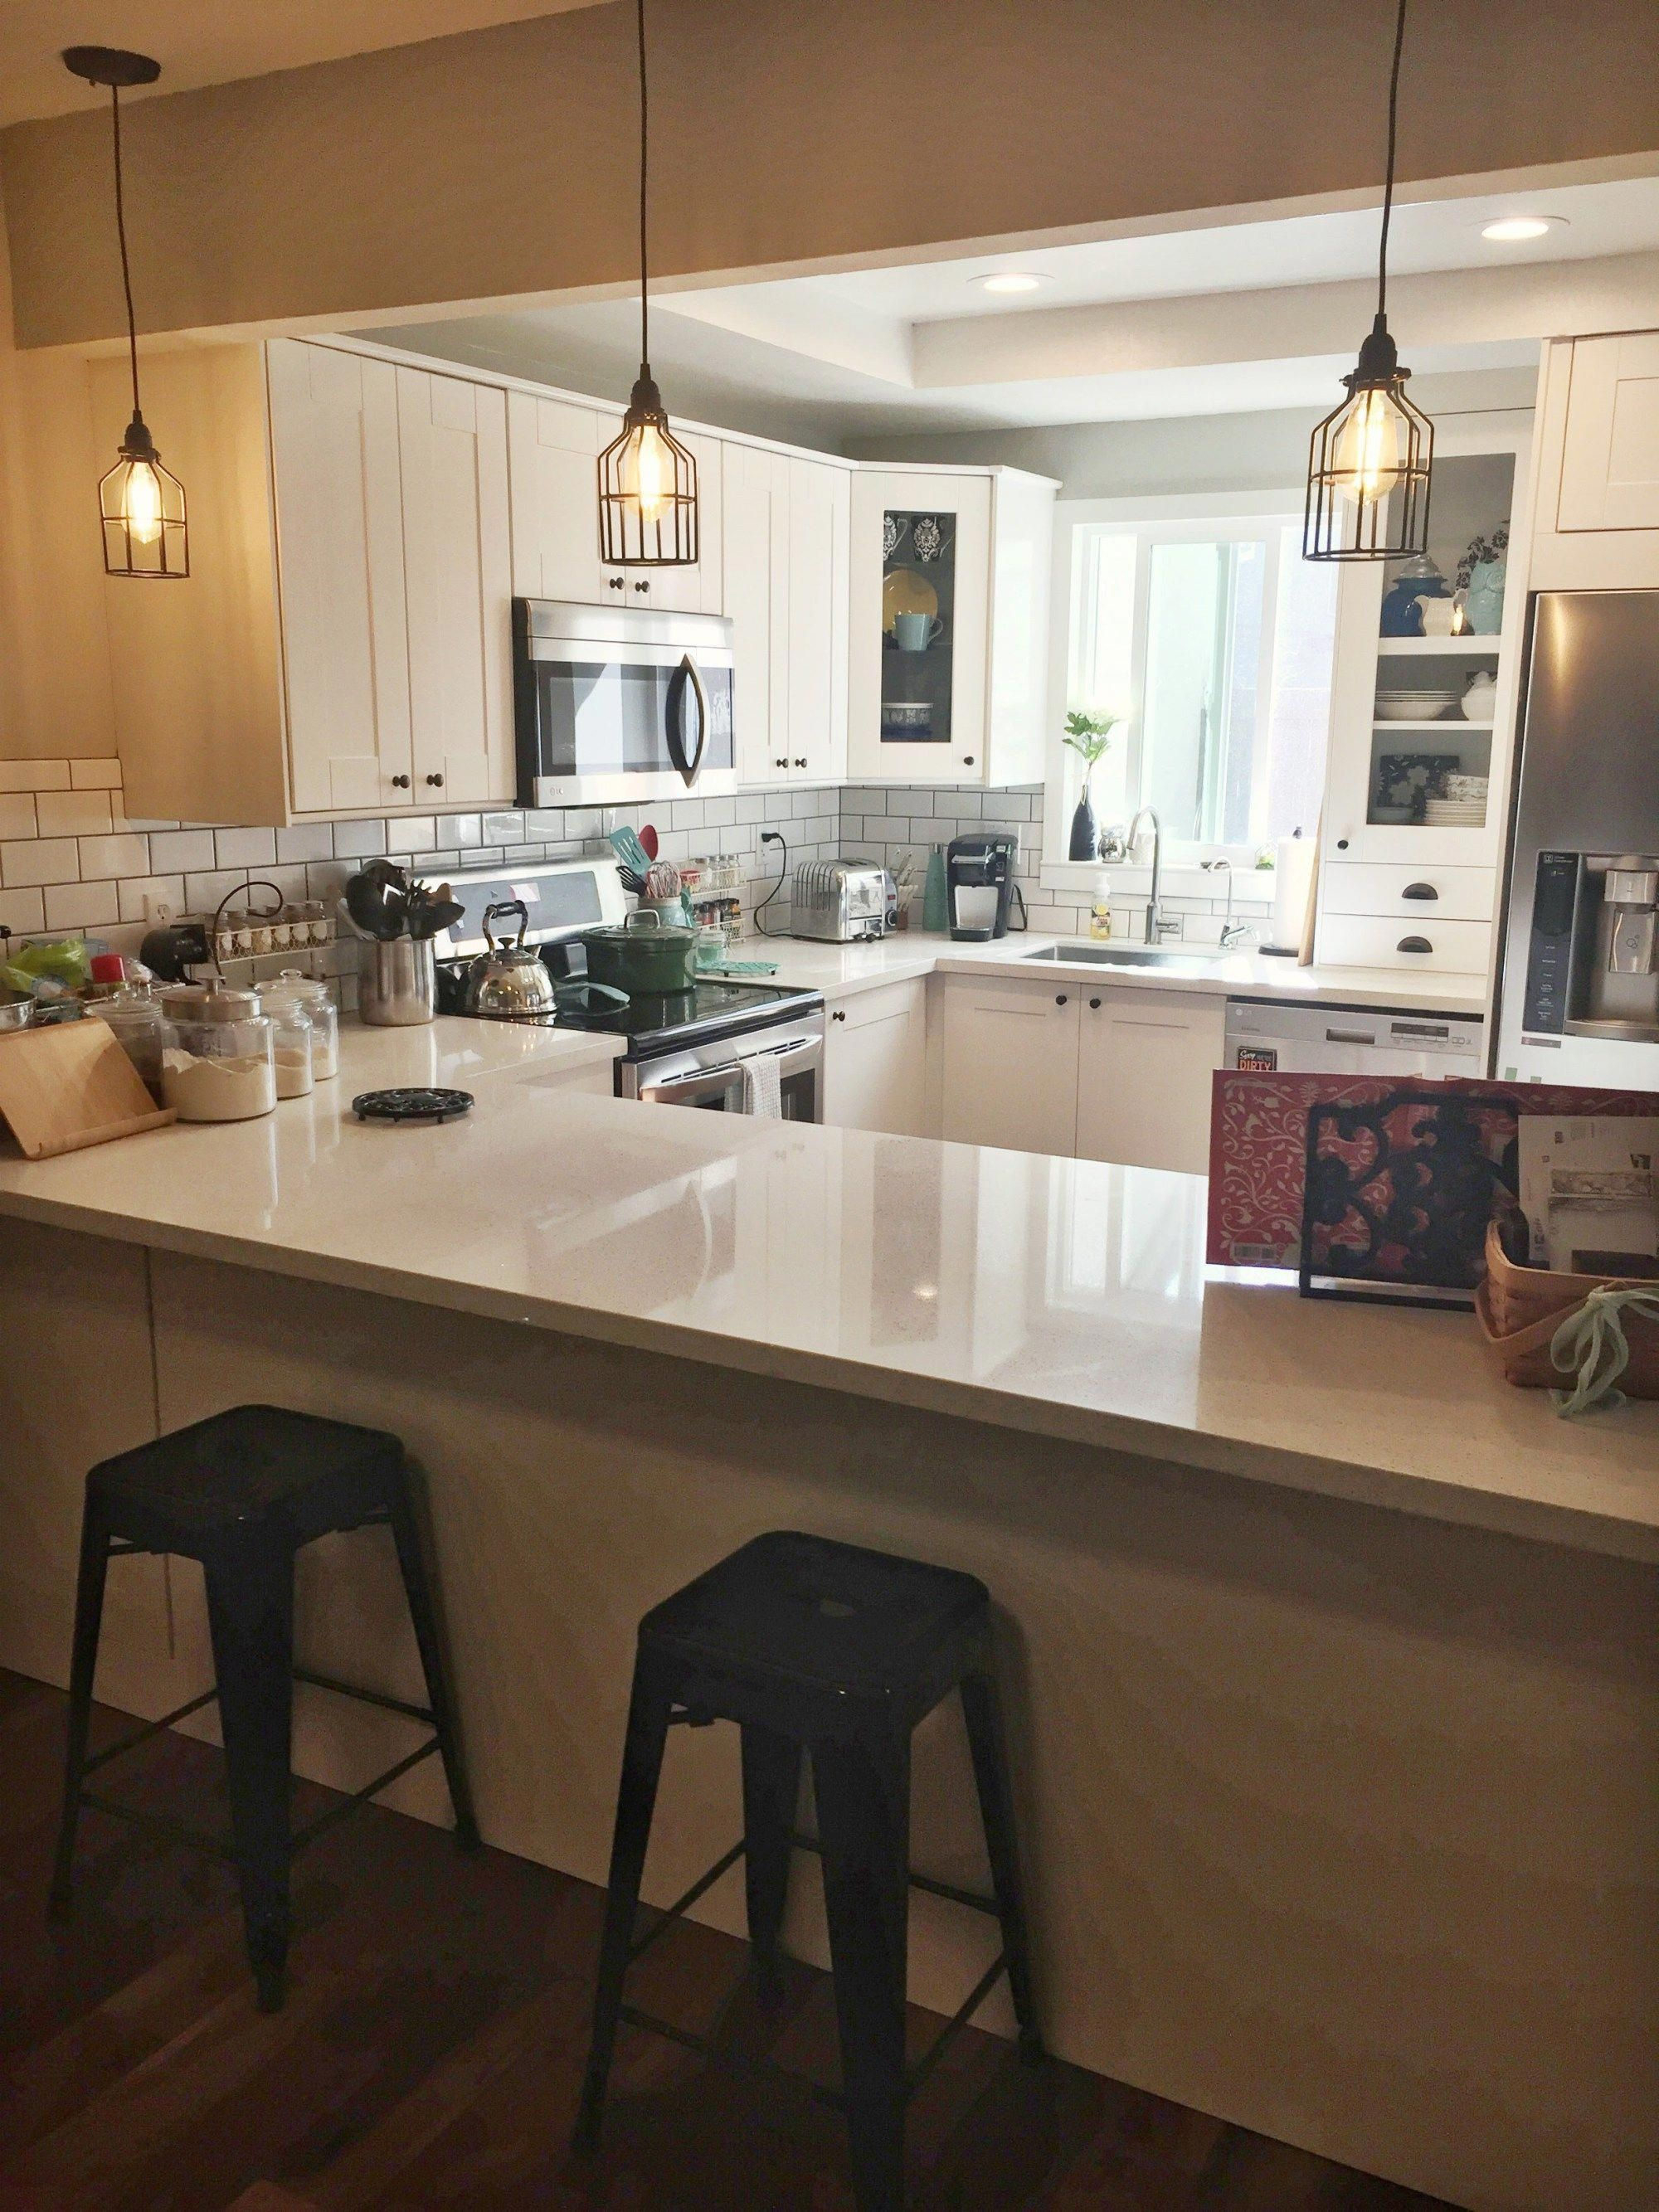 1960s Kitchen Remodel Before After: Kitchen Renovation Reveal Before And After Pictures